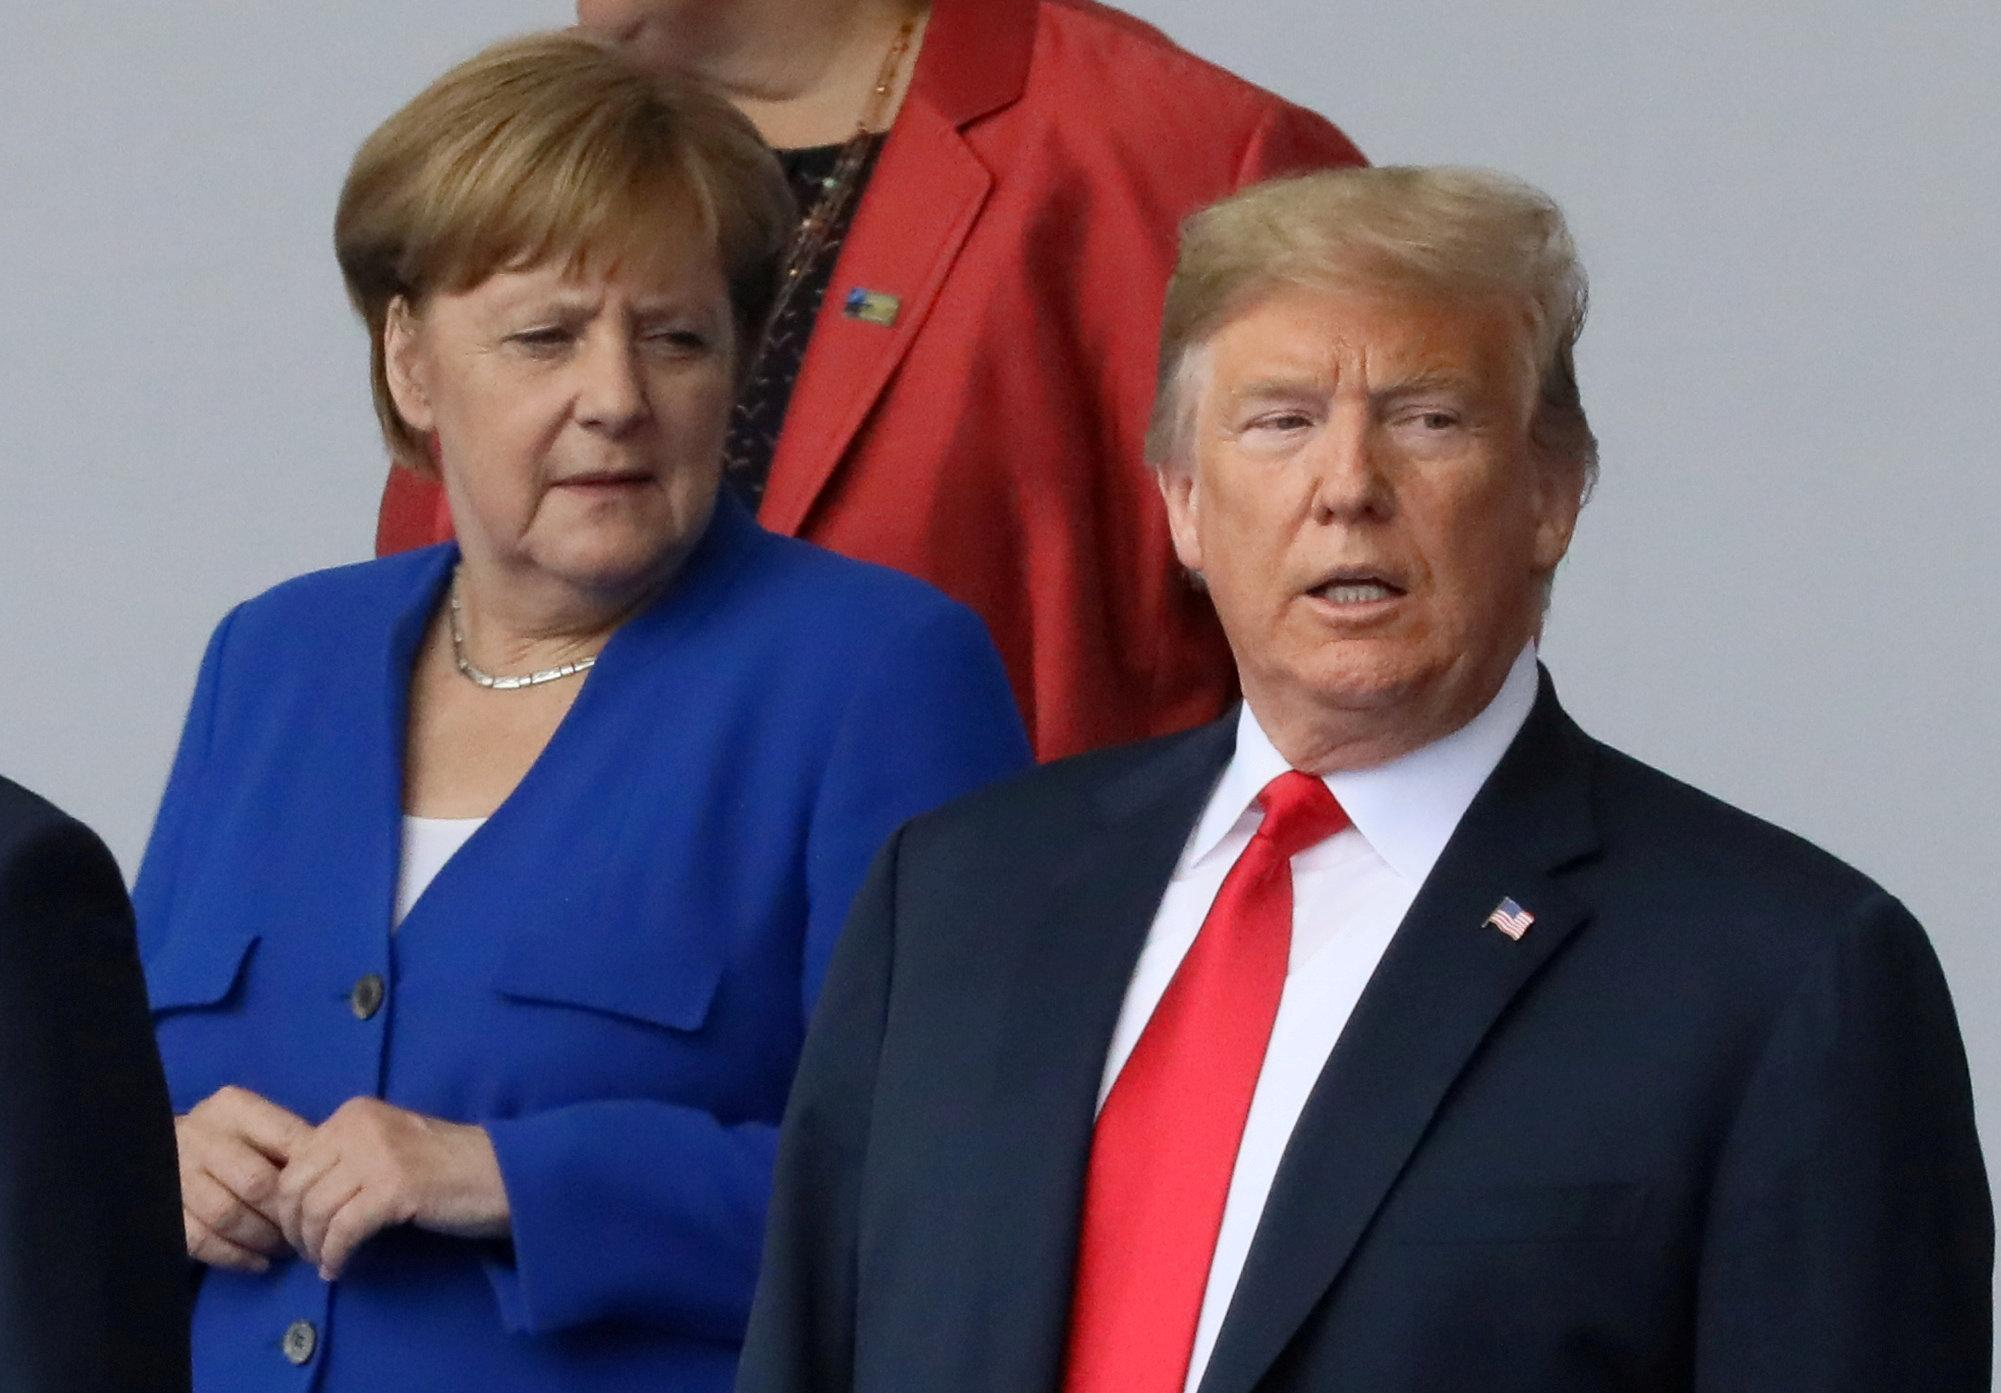 German Chancellor Angela Merkel and U.S. President Donald Trump are seen as they pose for a photo at the start of the NATO summit in Brussels, Belgium July 11, 2018.   Reinhard Krause